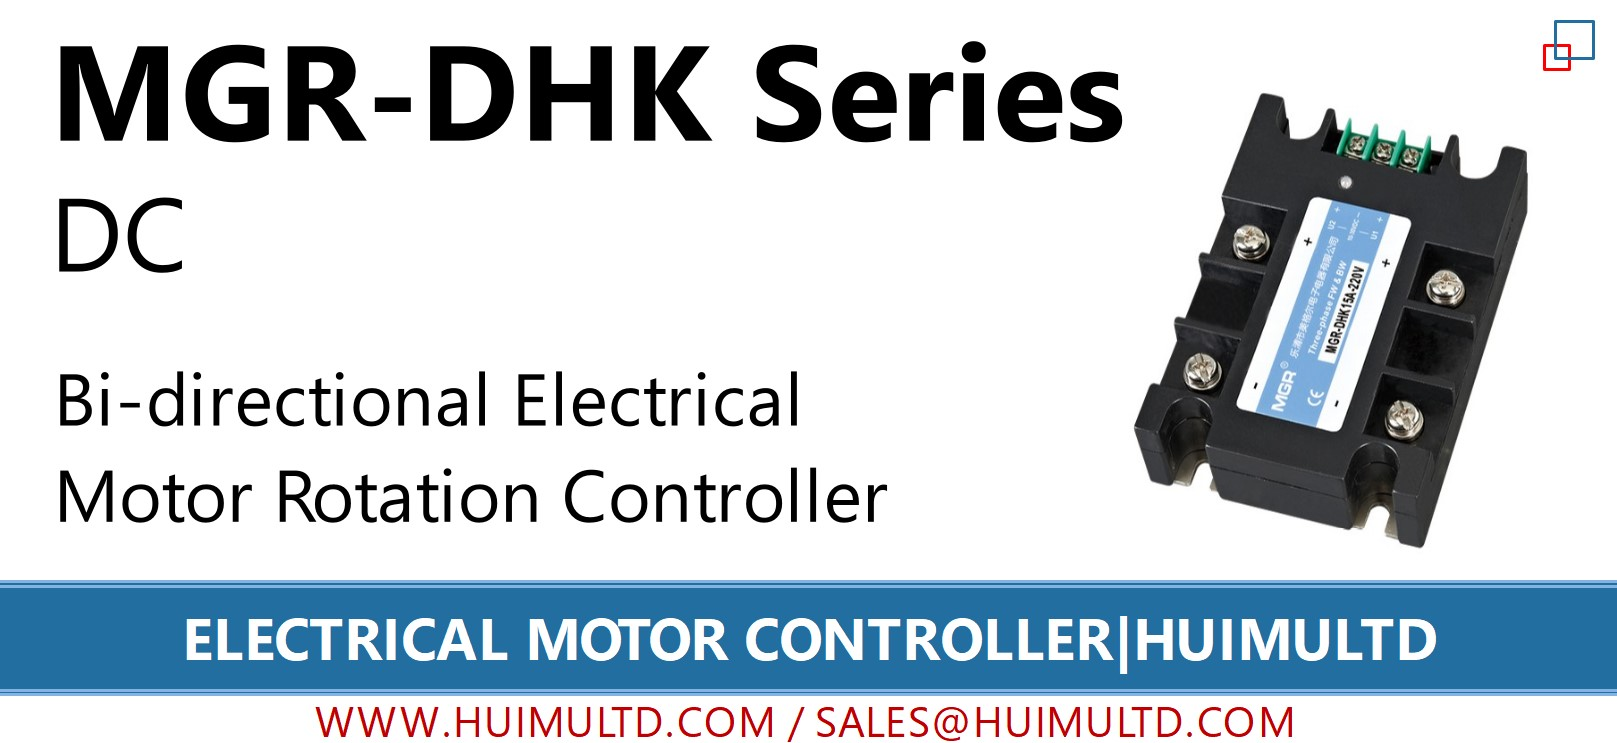 MGR-DHK Series Electrical Motor Controller